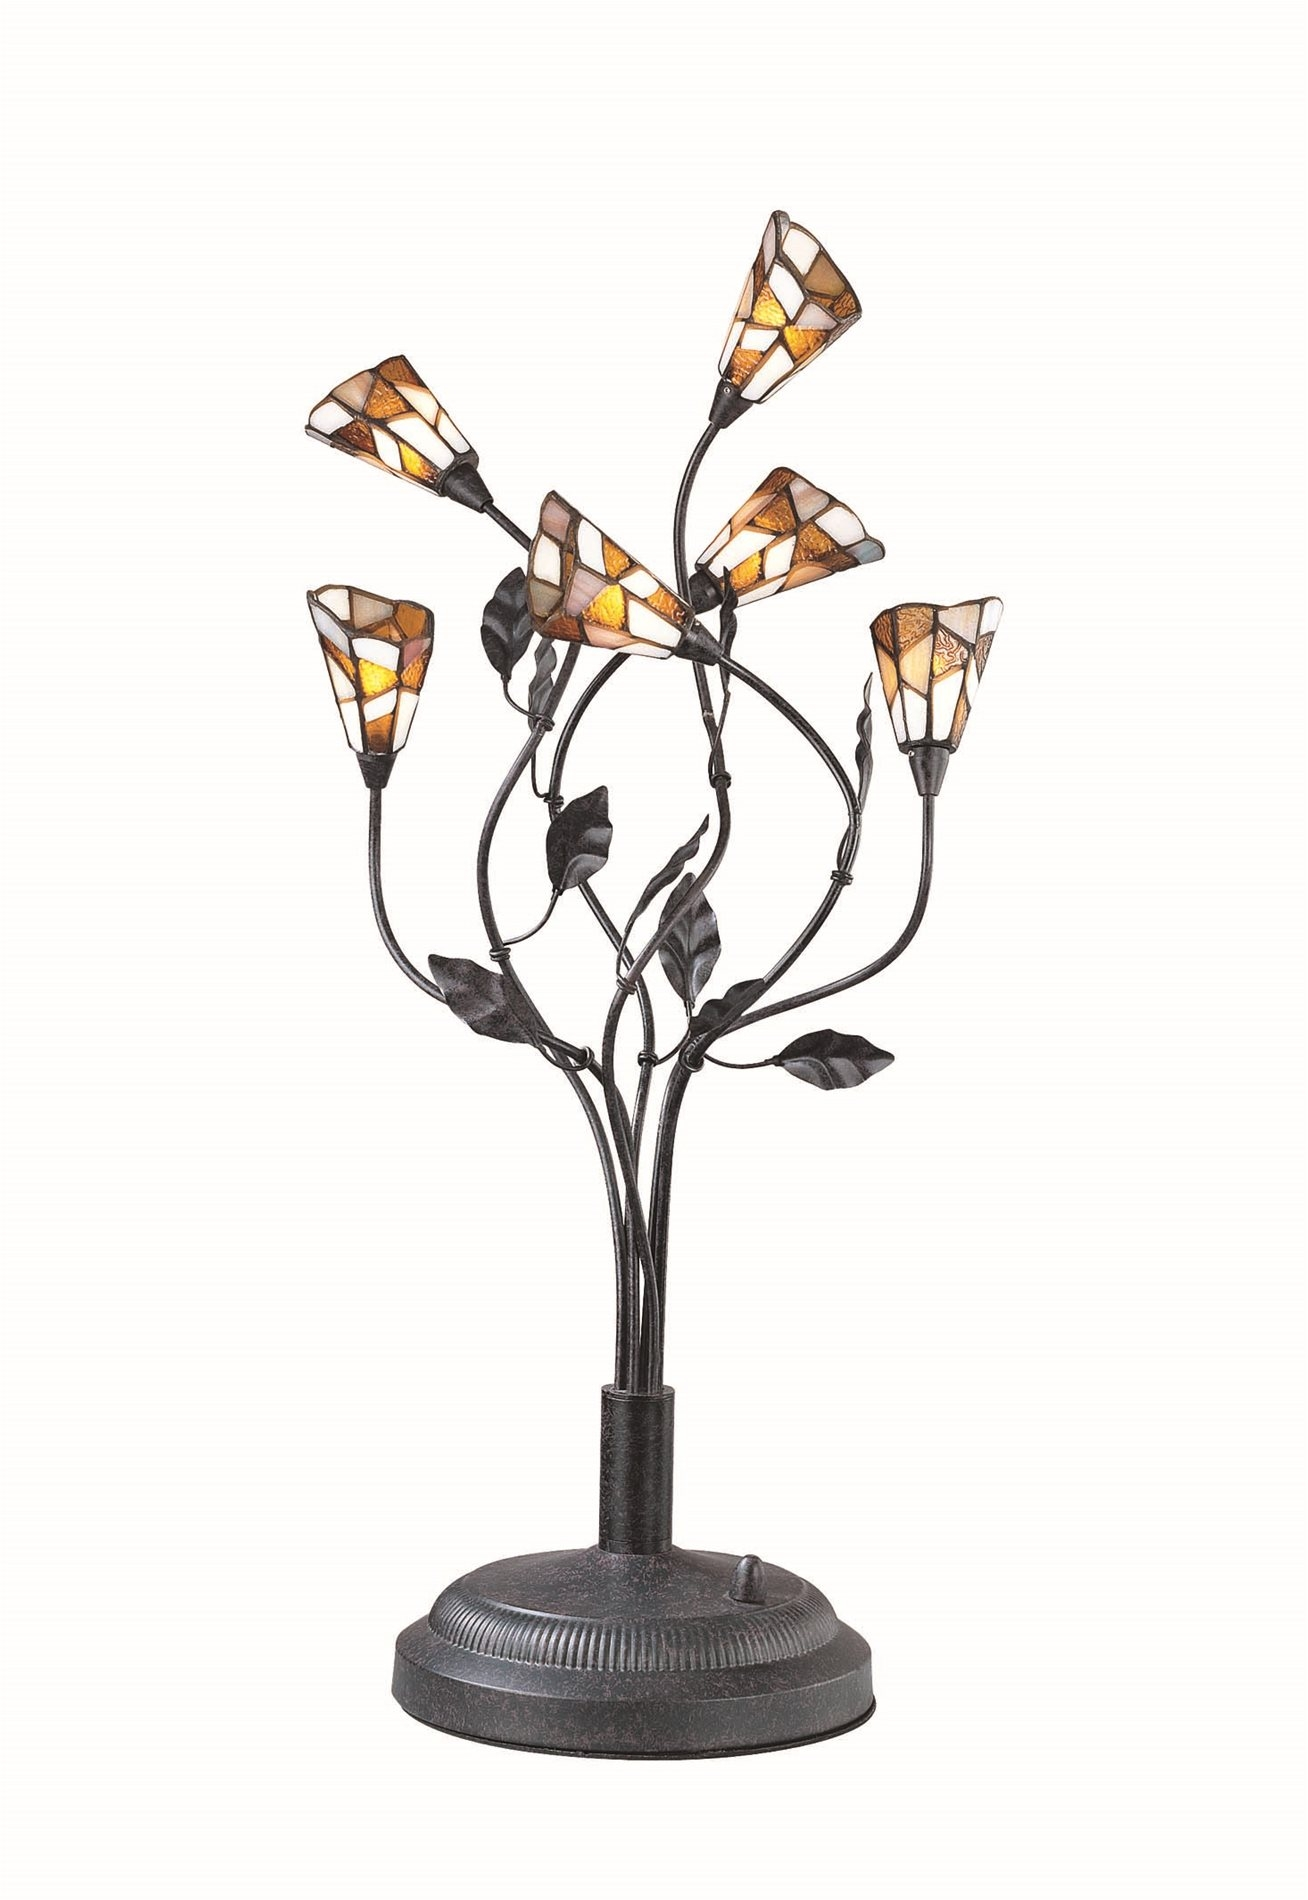 Six Light Tiffany Table Lamp with Novelty Shade